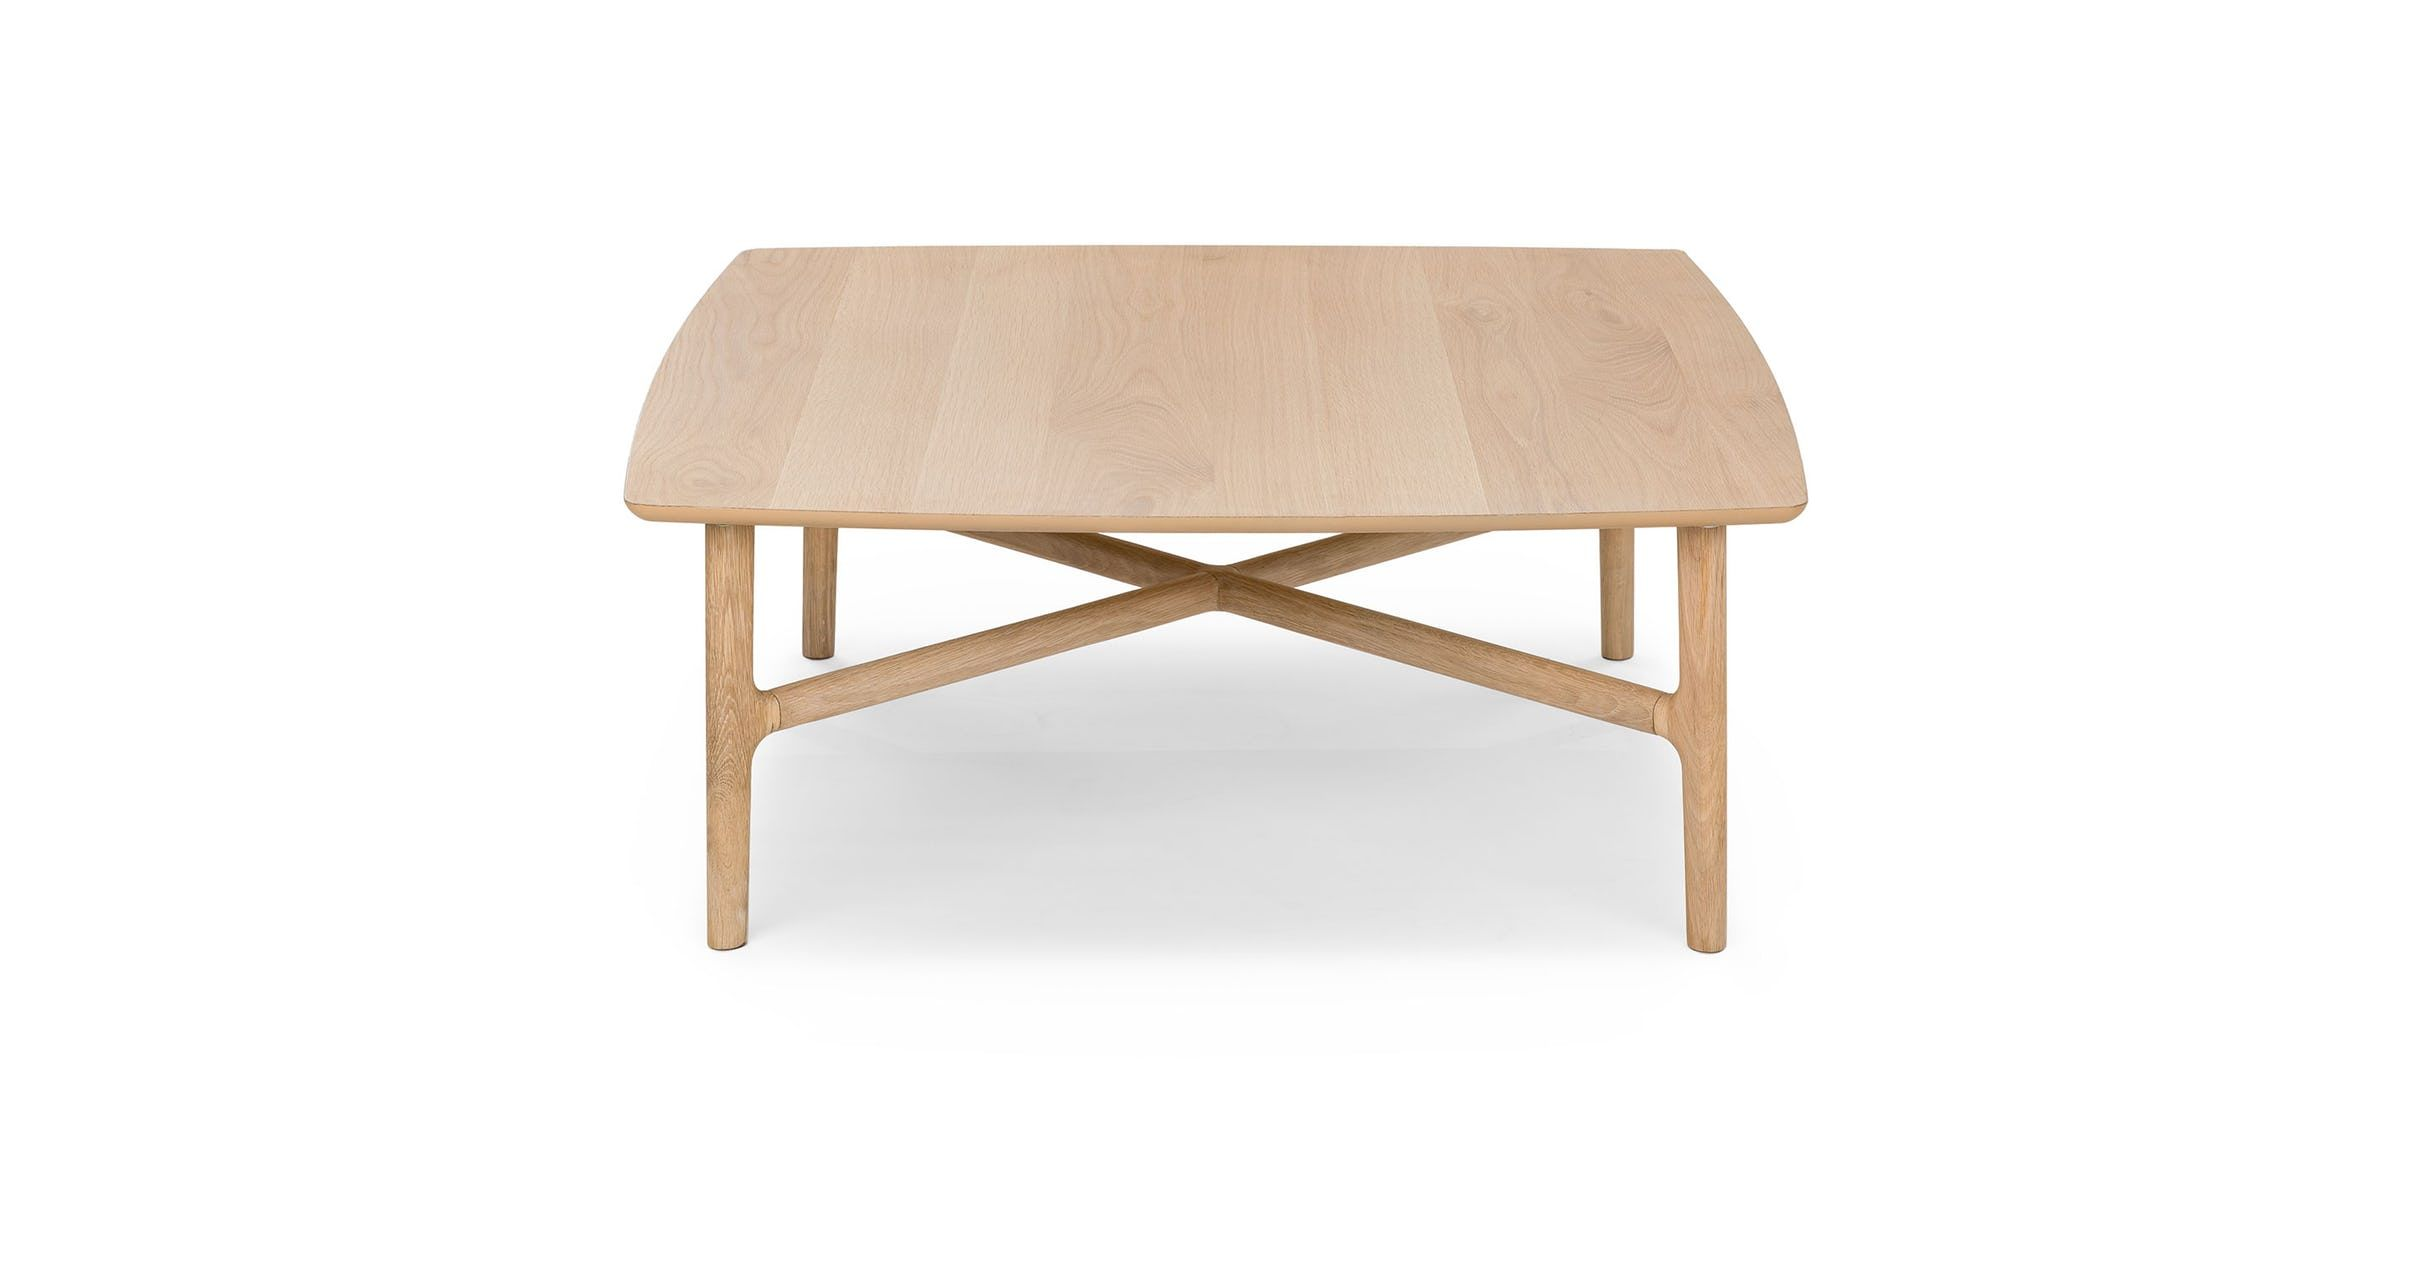 Brezza Light Oak Square Coffee Table Coffee Tables Article Modern Mid Century And Scand Mid Century Modern Coffee Table Coffee Table Square Coffee Table [ 1262 x 2432 Pixel ]